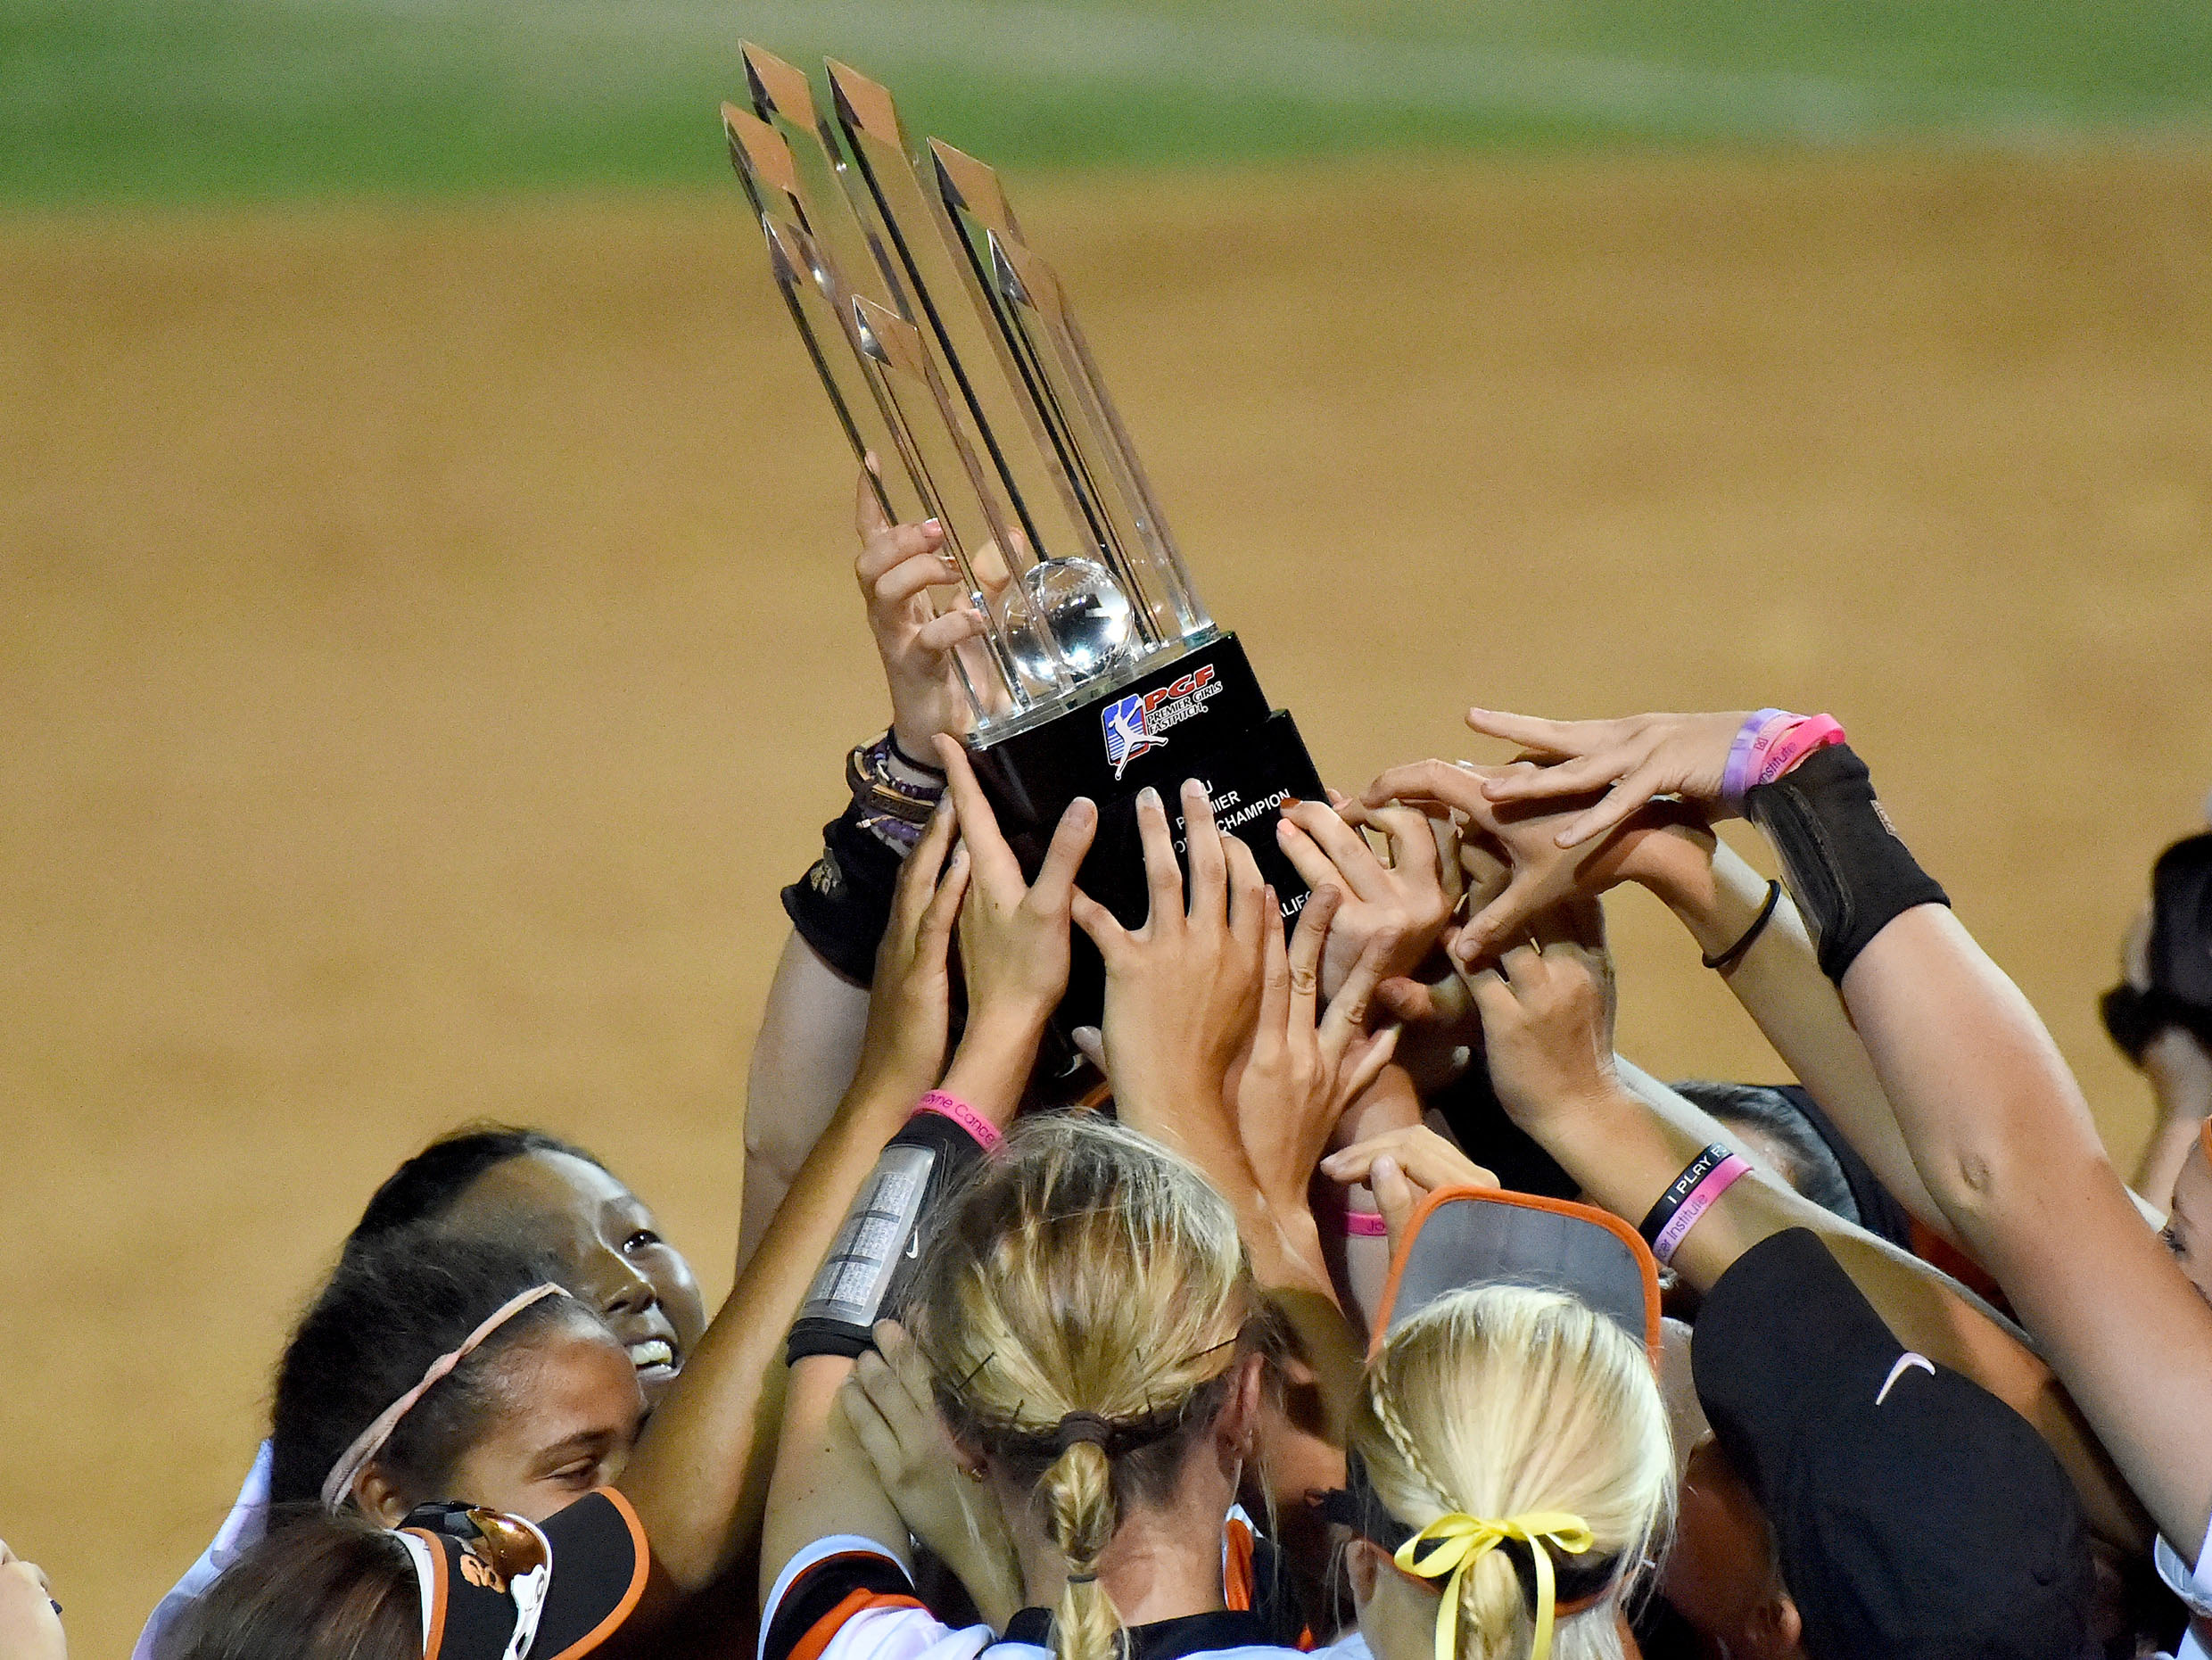 9428788-softball-pgf-nationals-championship-14u-16u-beverly-bandits-v-south-dakota-renegades